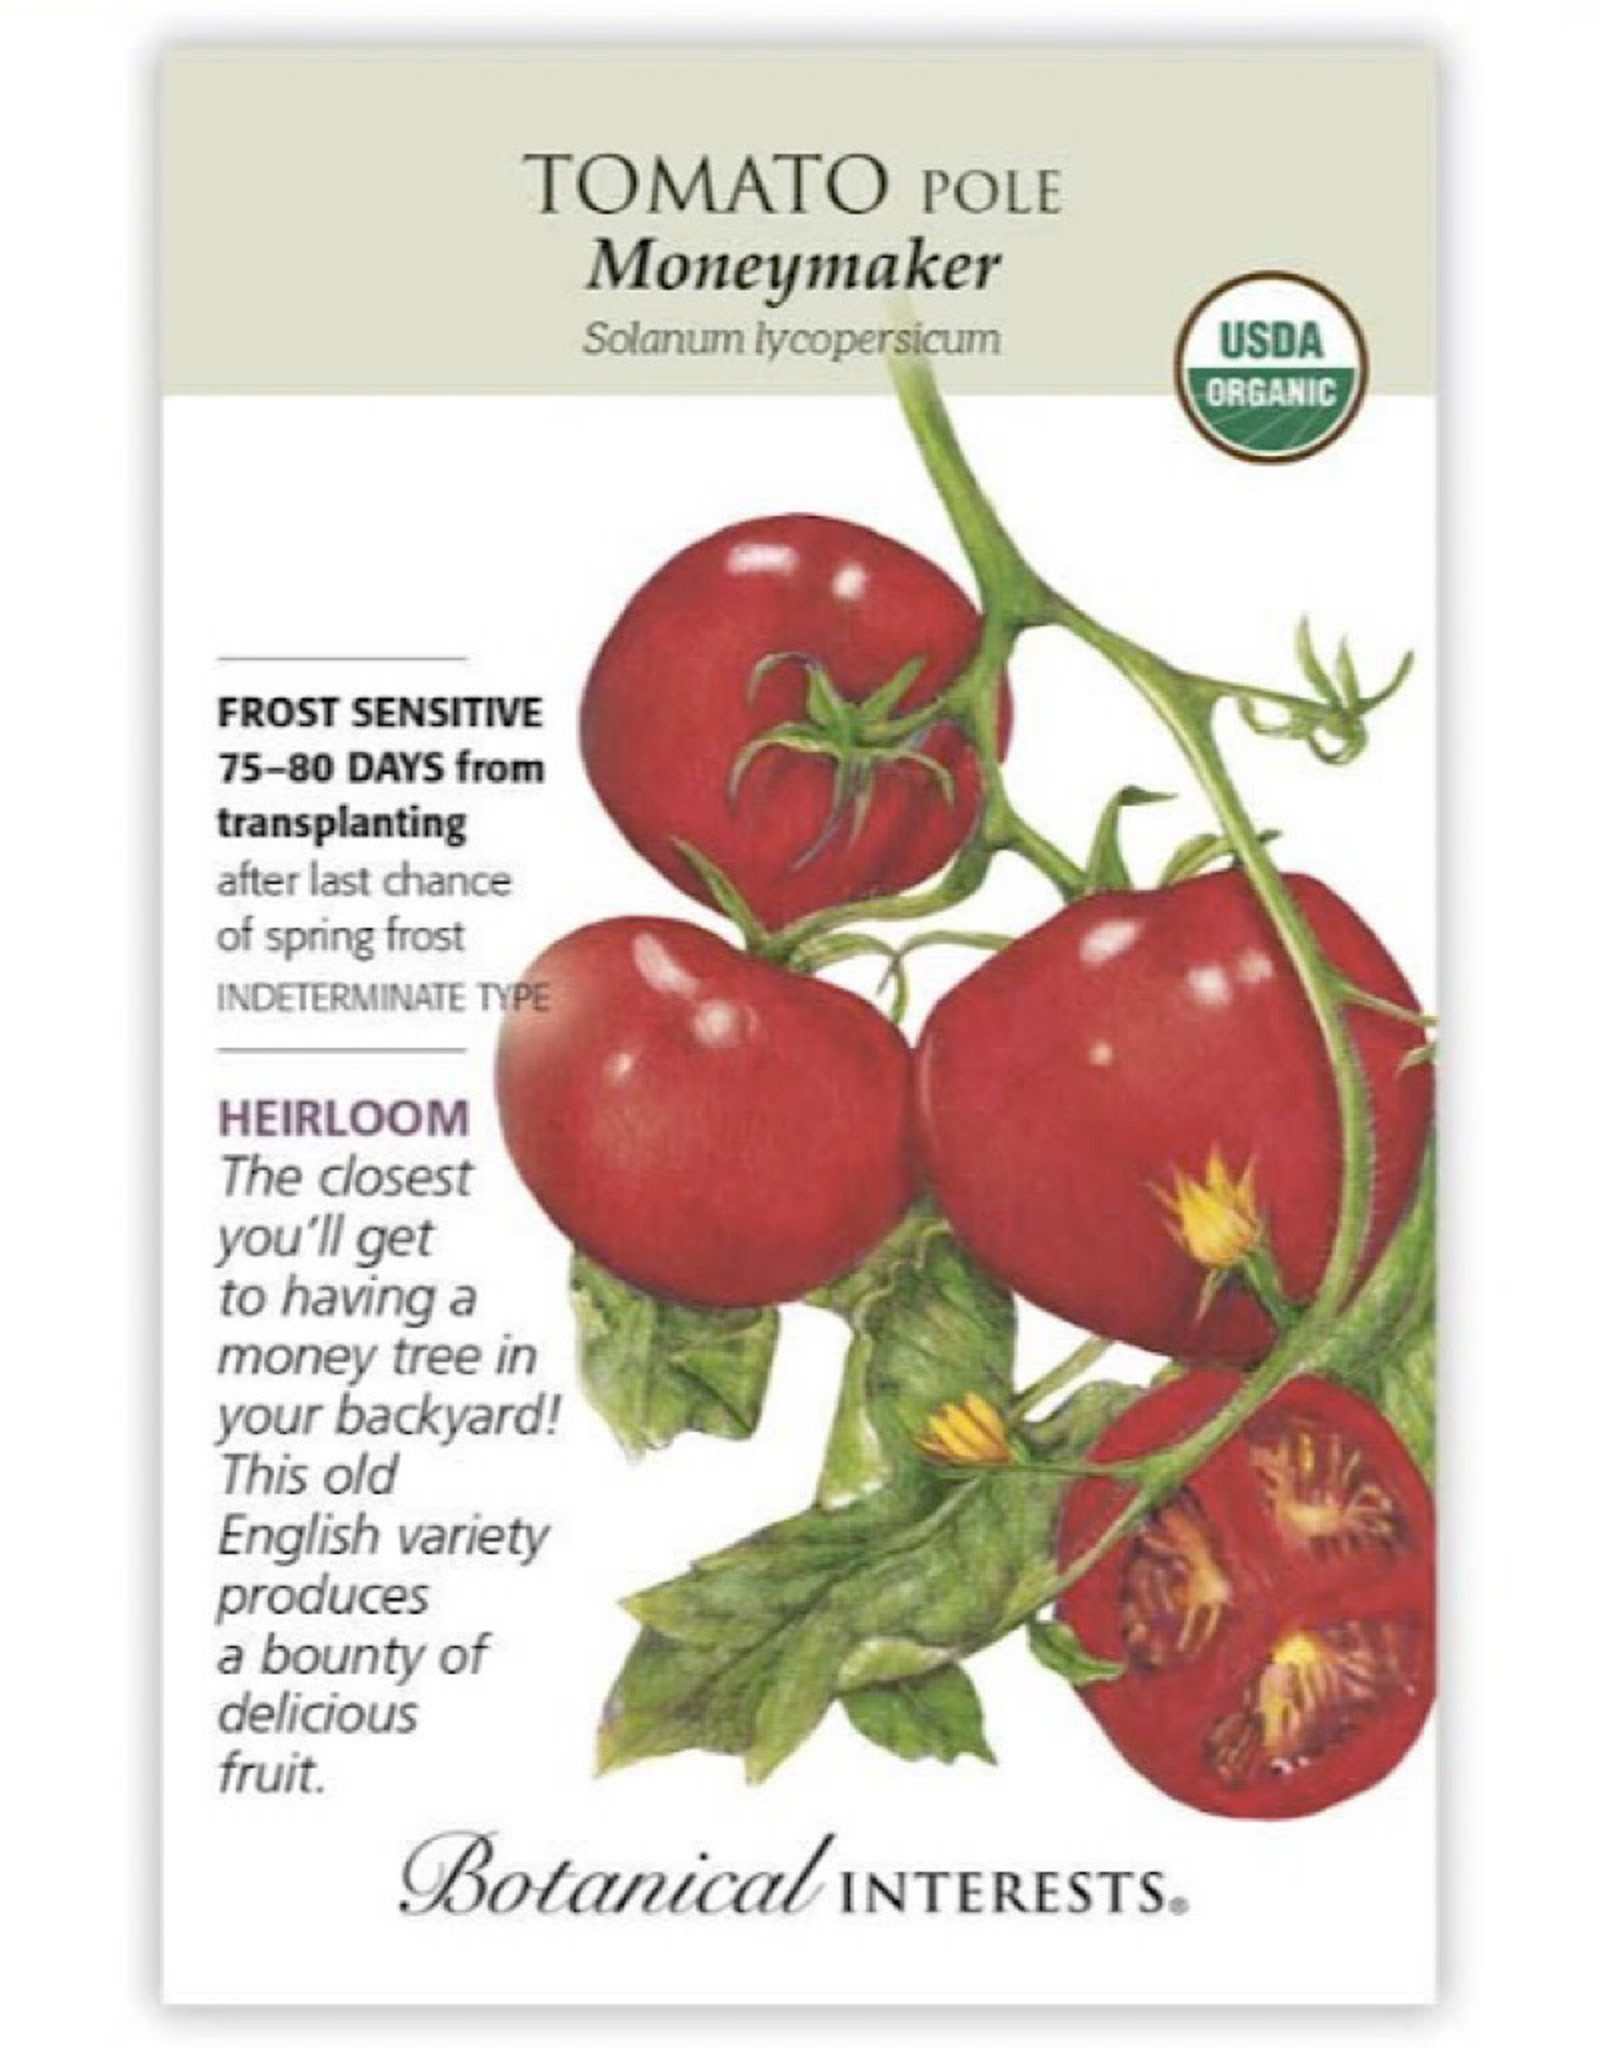 Tomato 'Moneymaker' Seed Pack